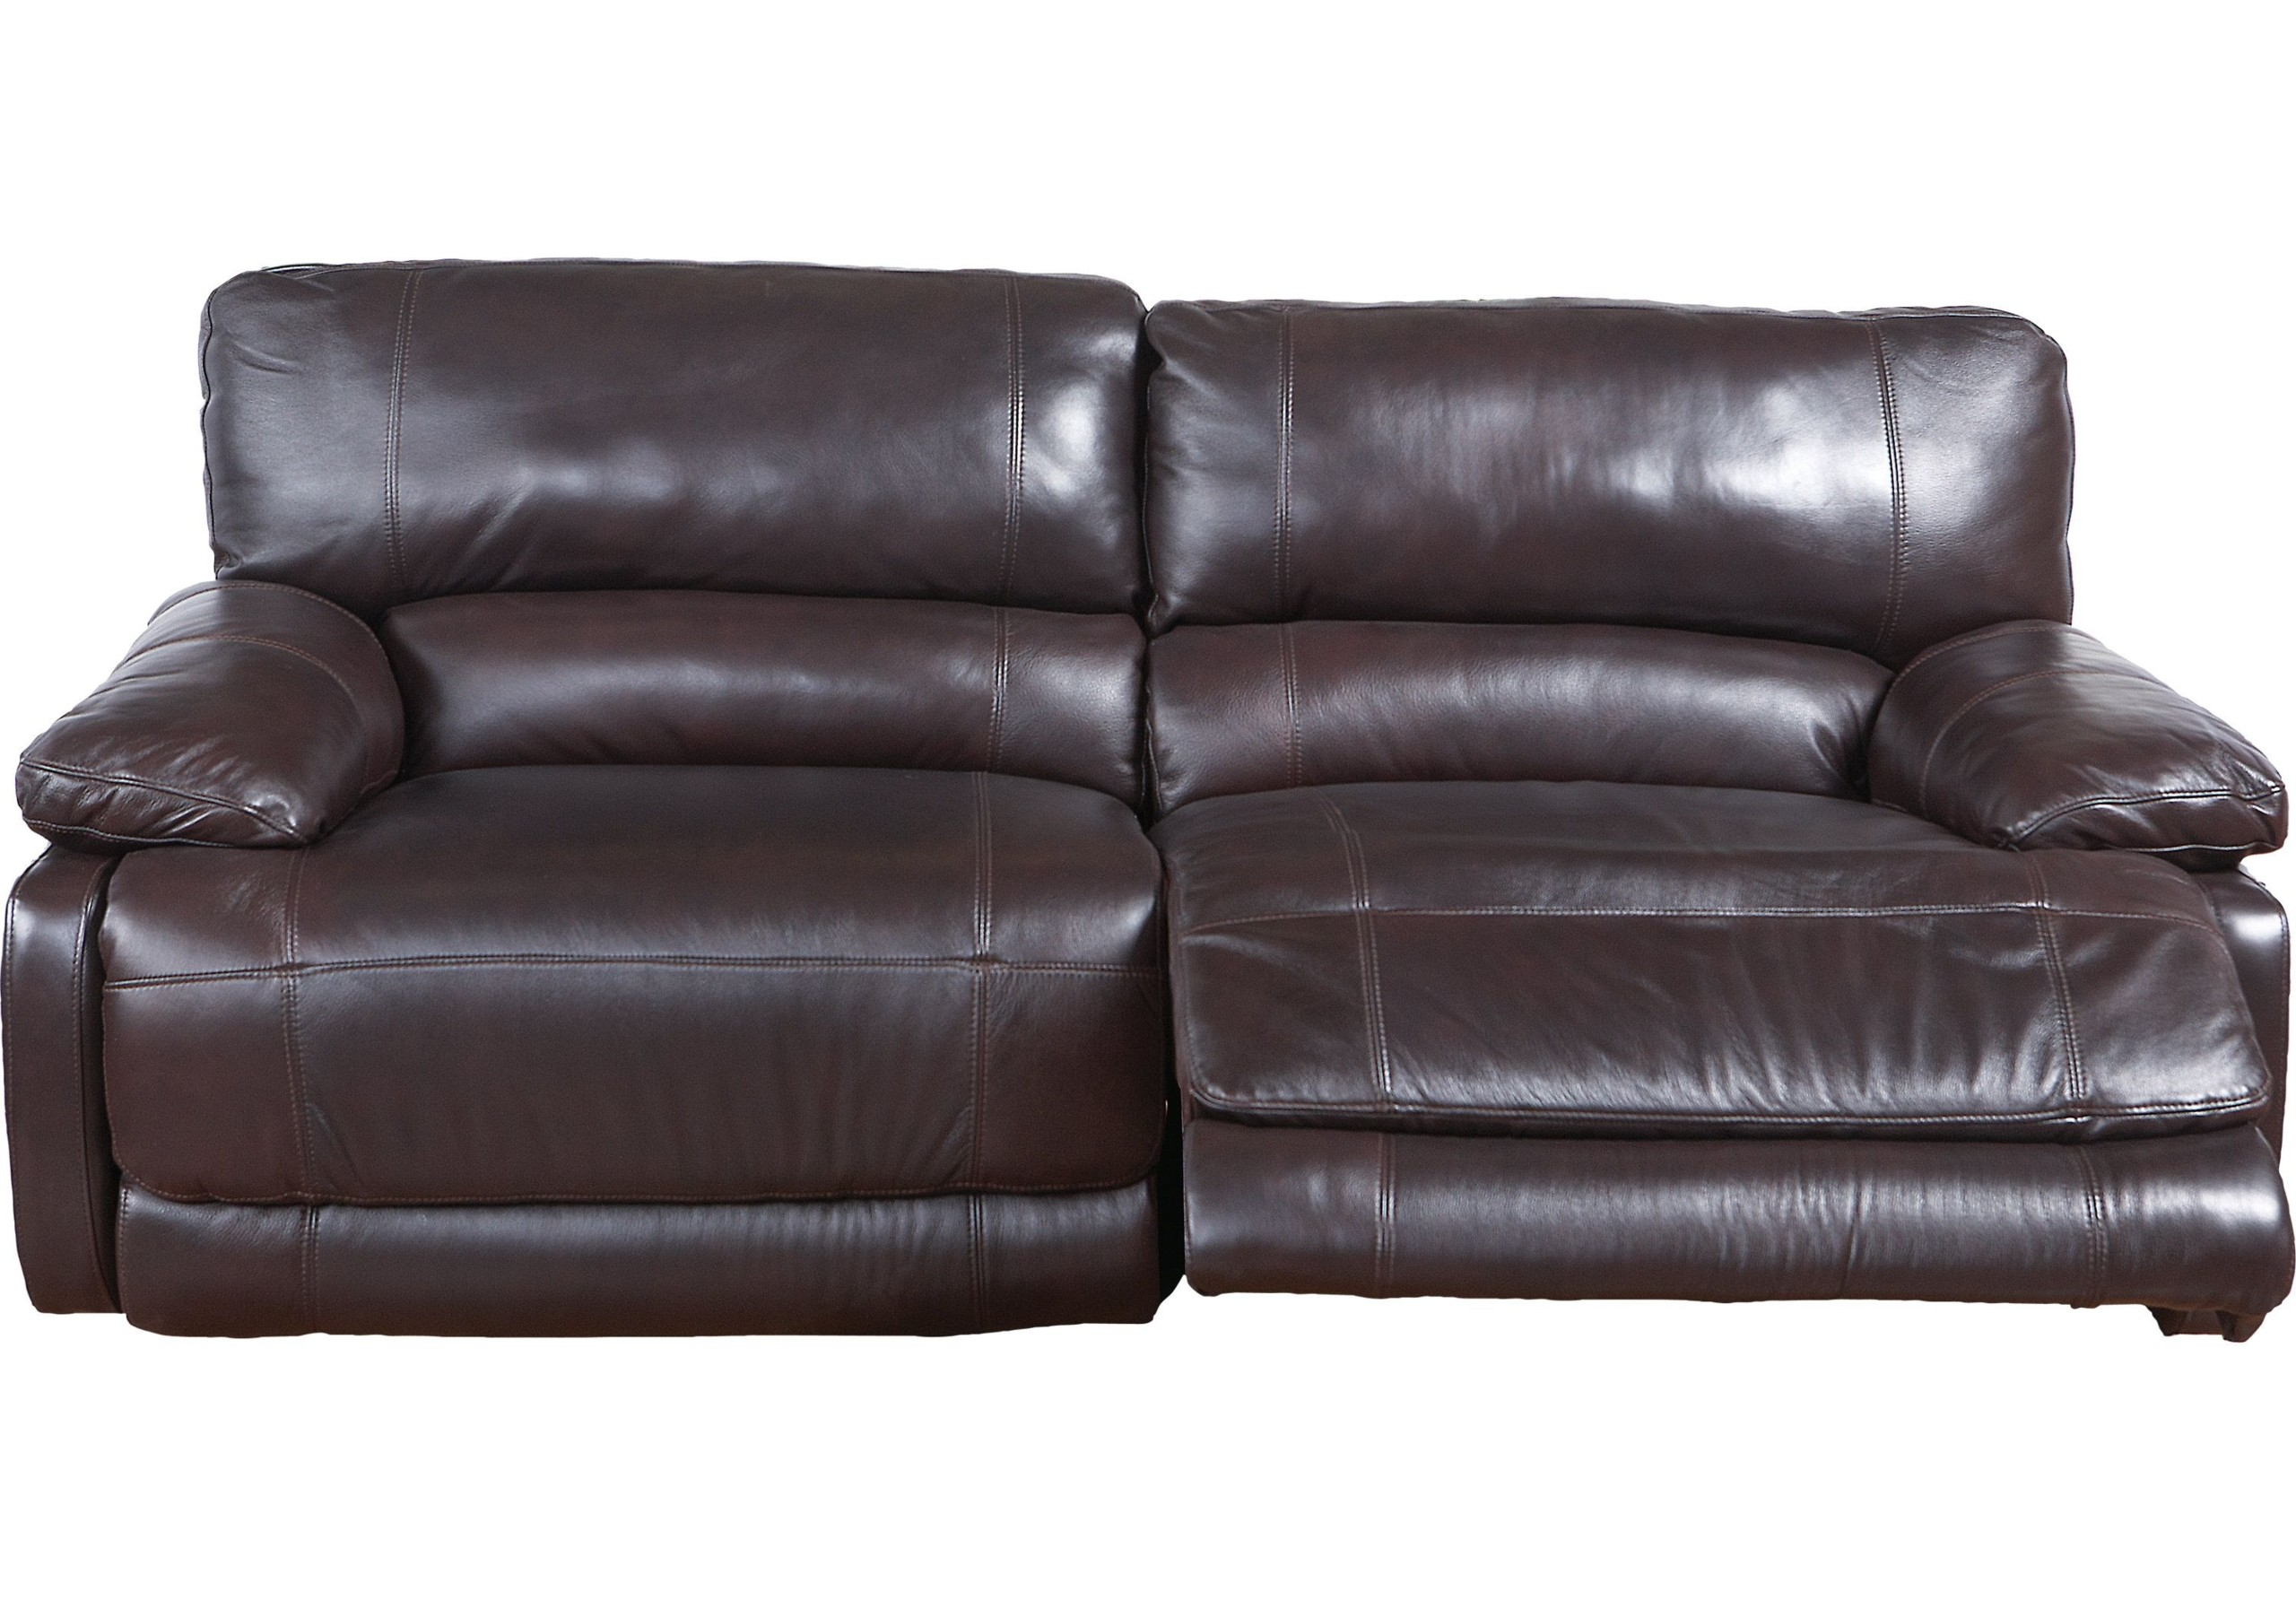 Two Seater Recliner Chairs